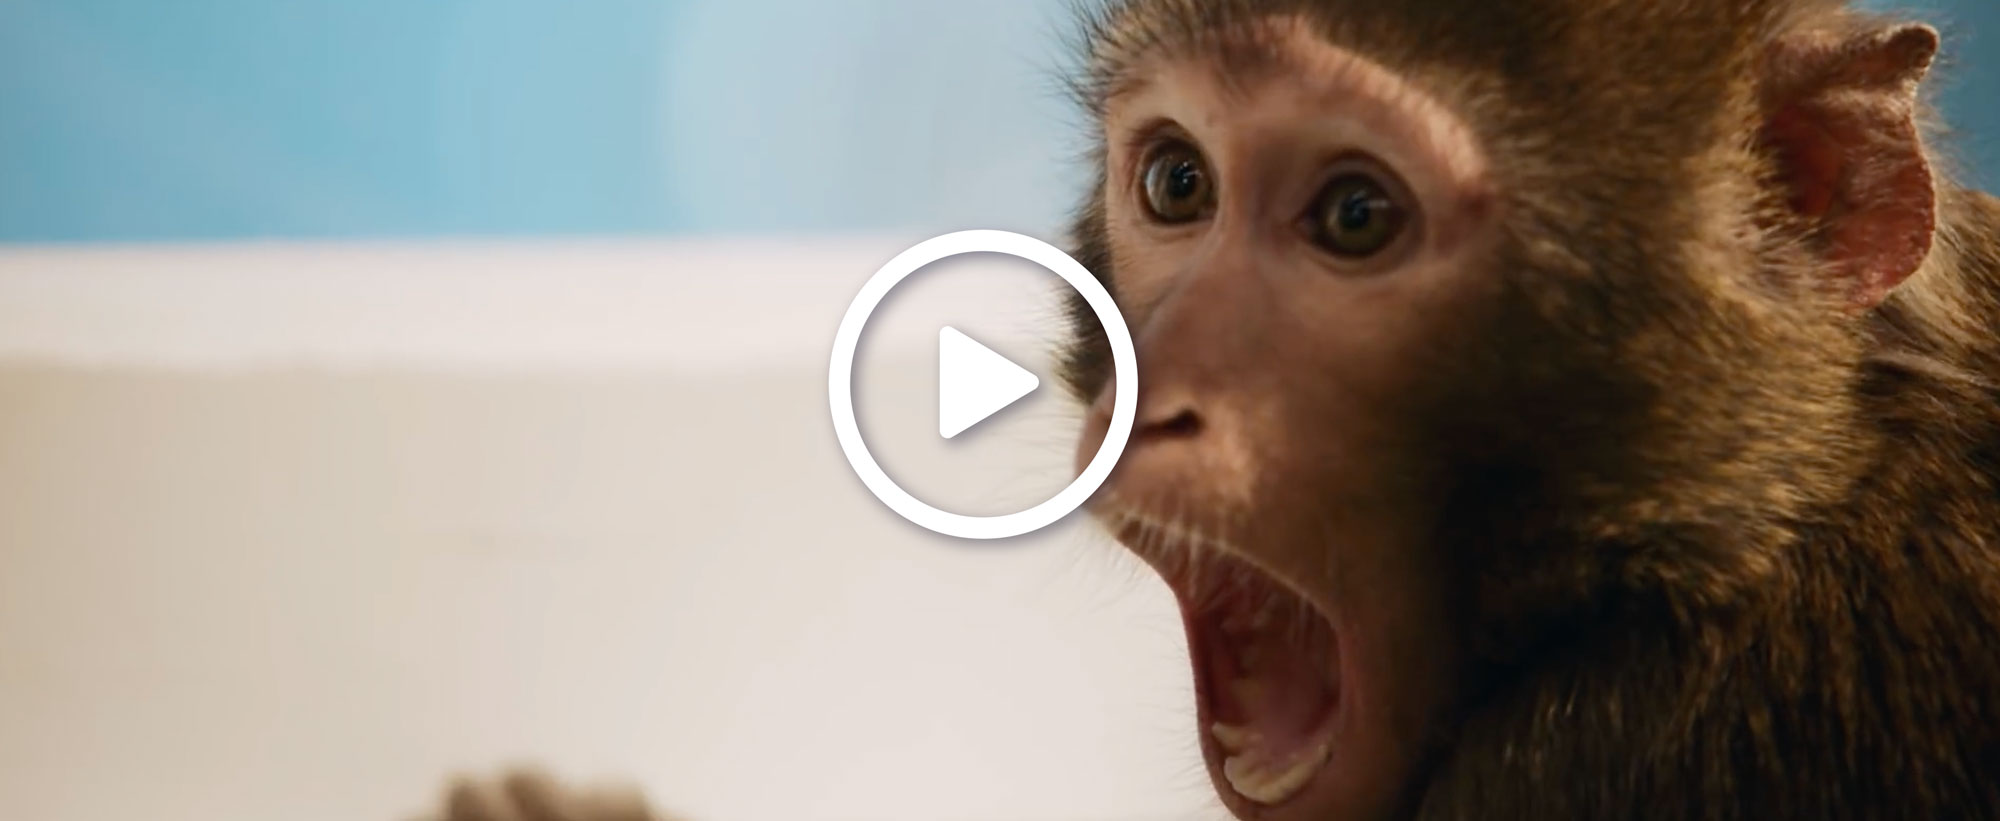 Monkey easy in easy out samsung refrigerator